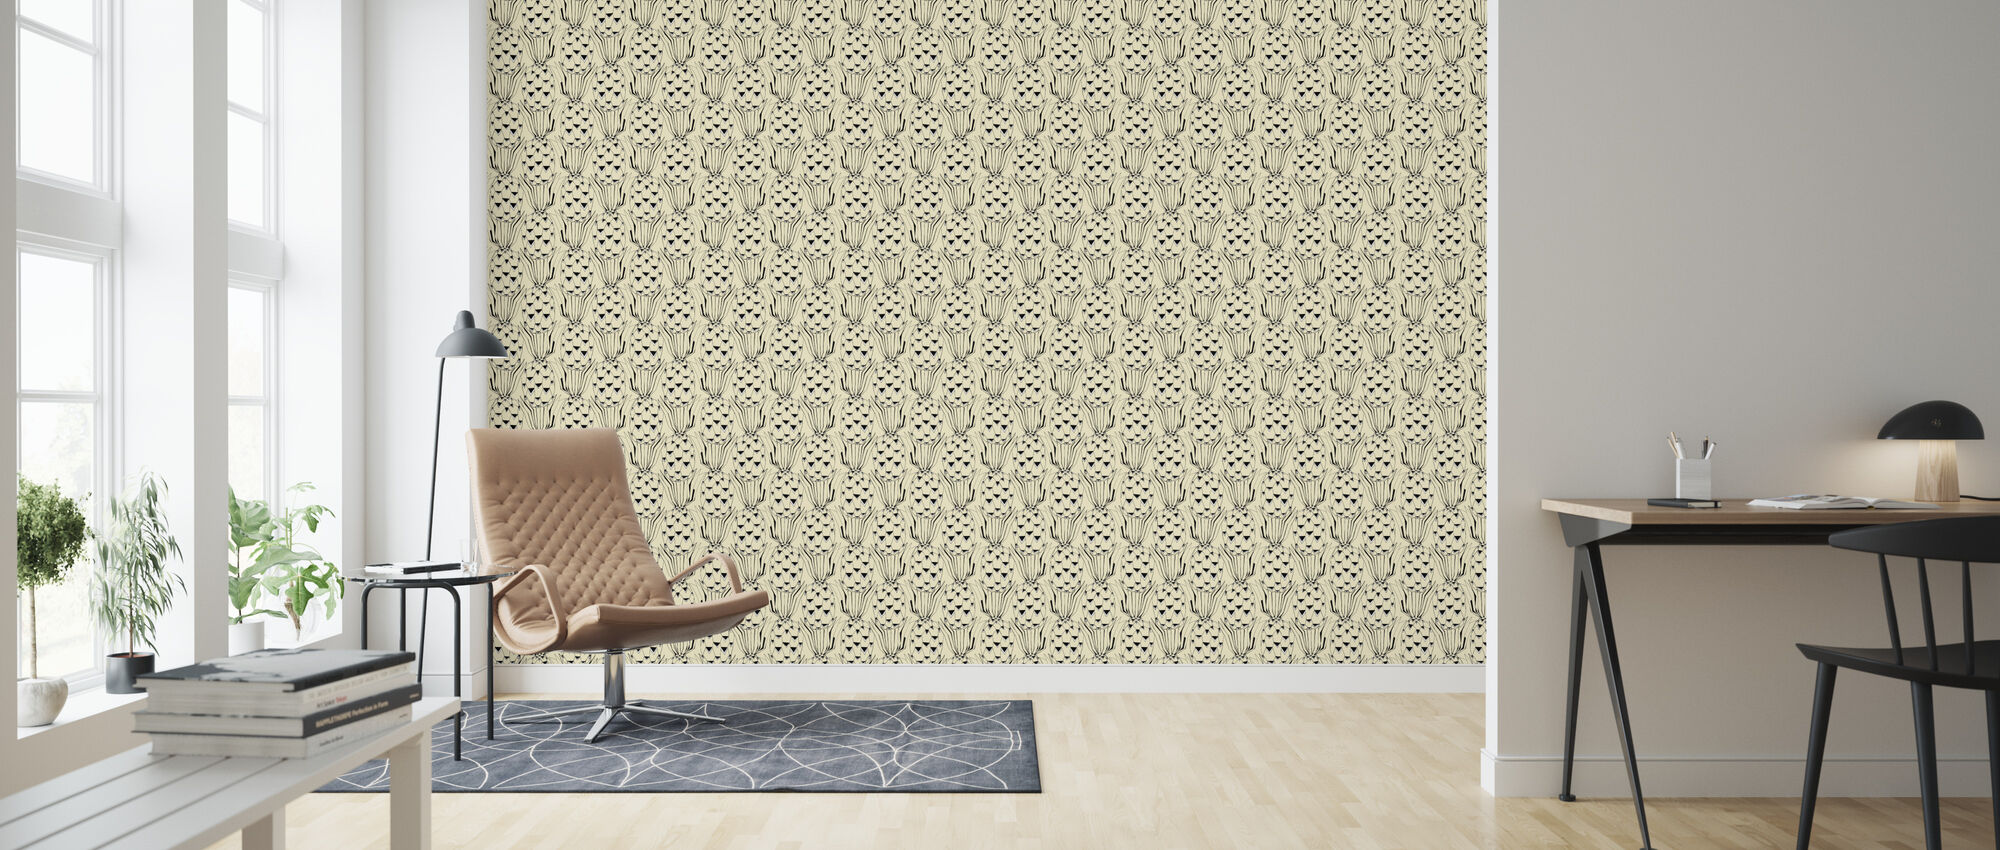 Pineapple - Curd - Wallpaper - Living Room